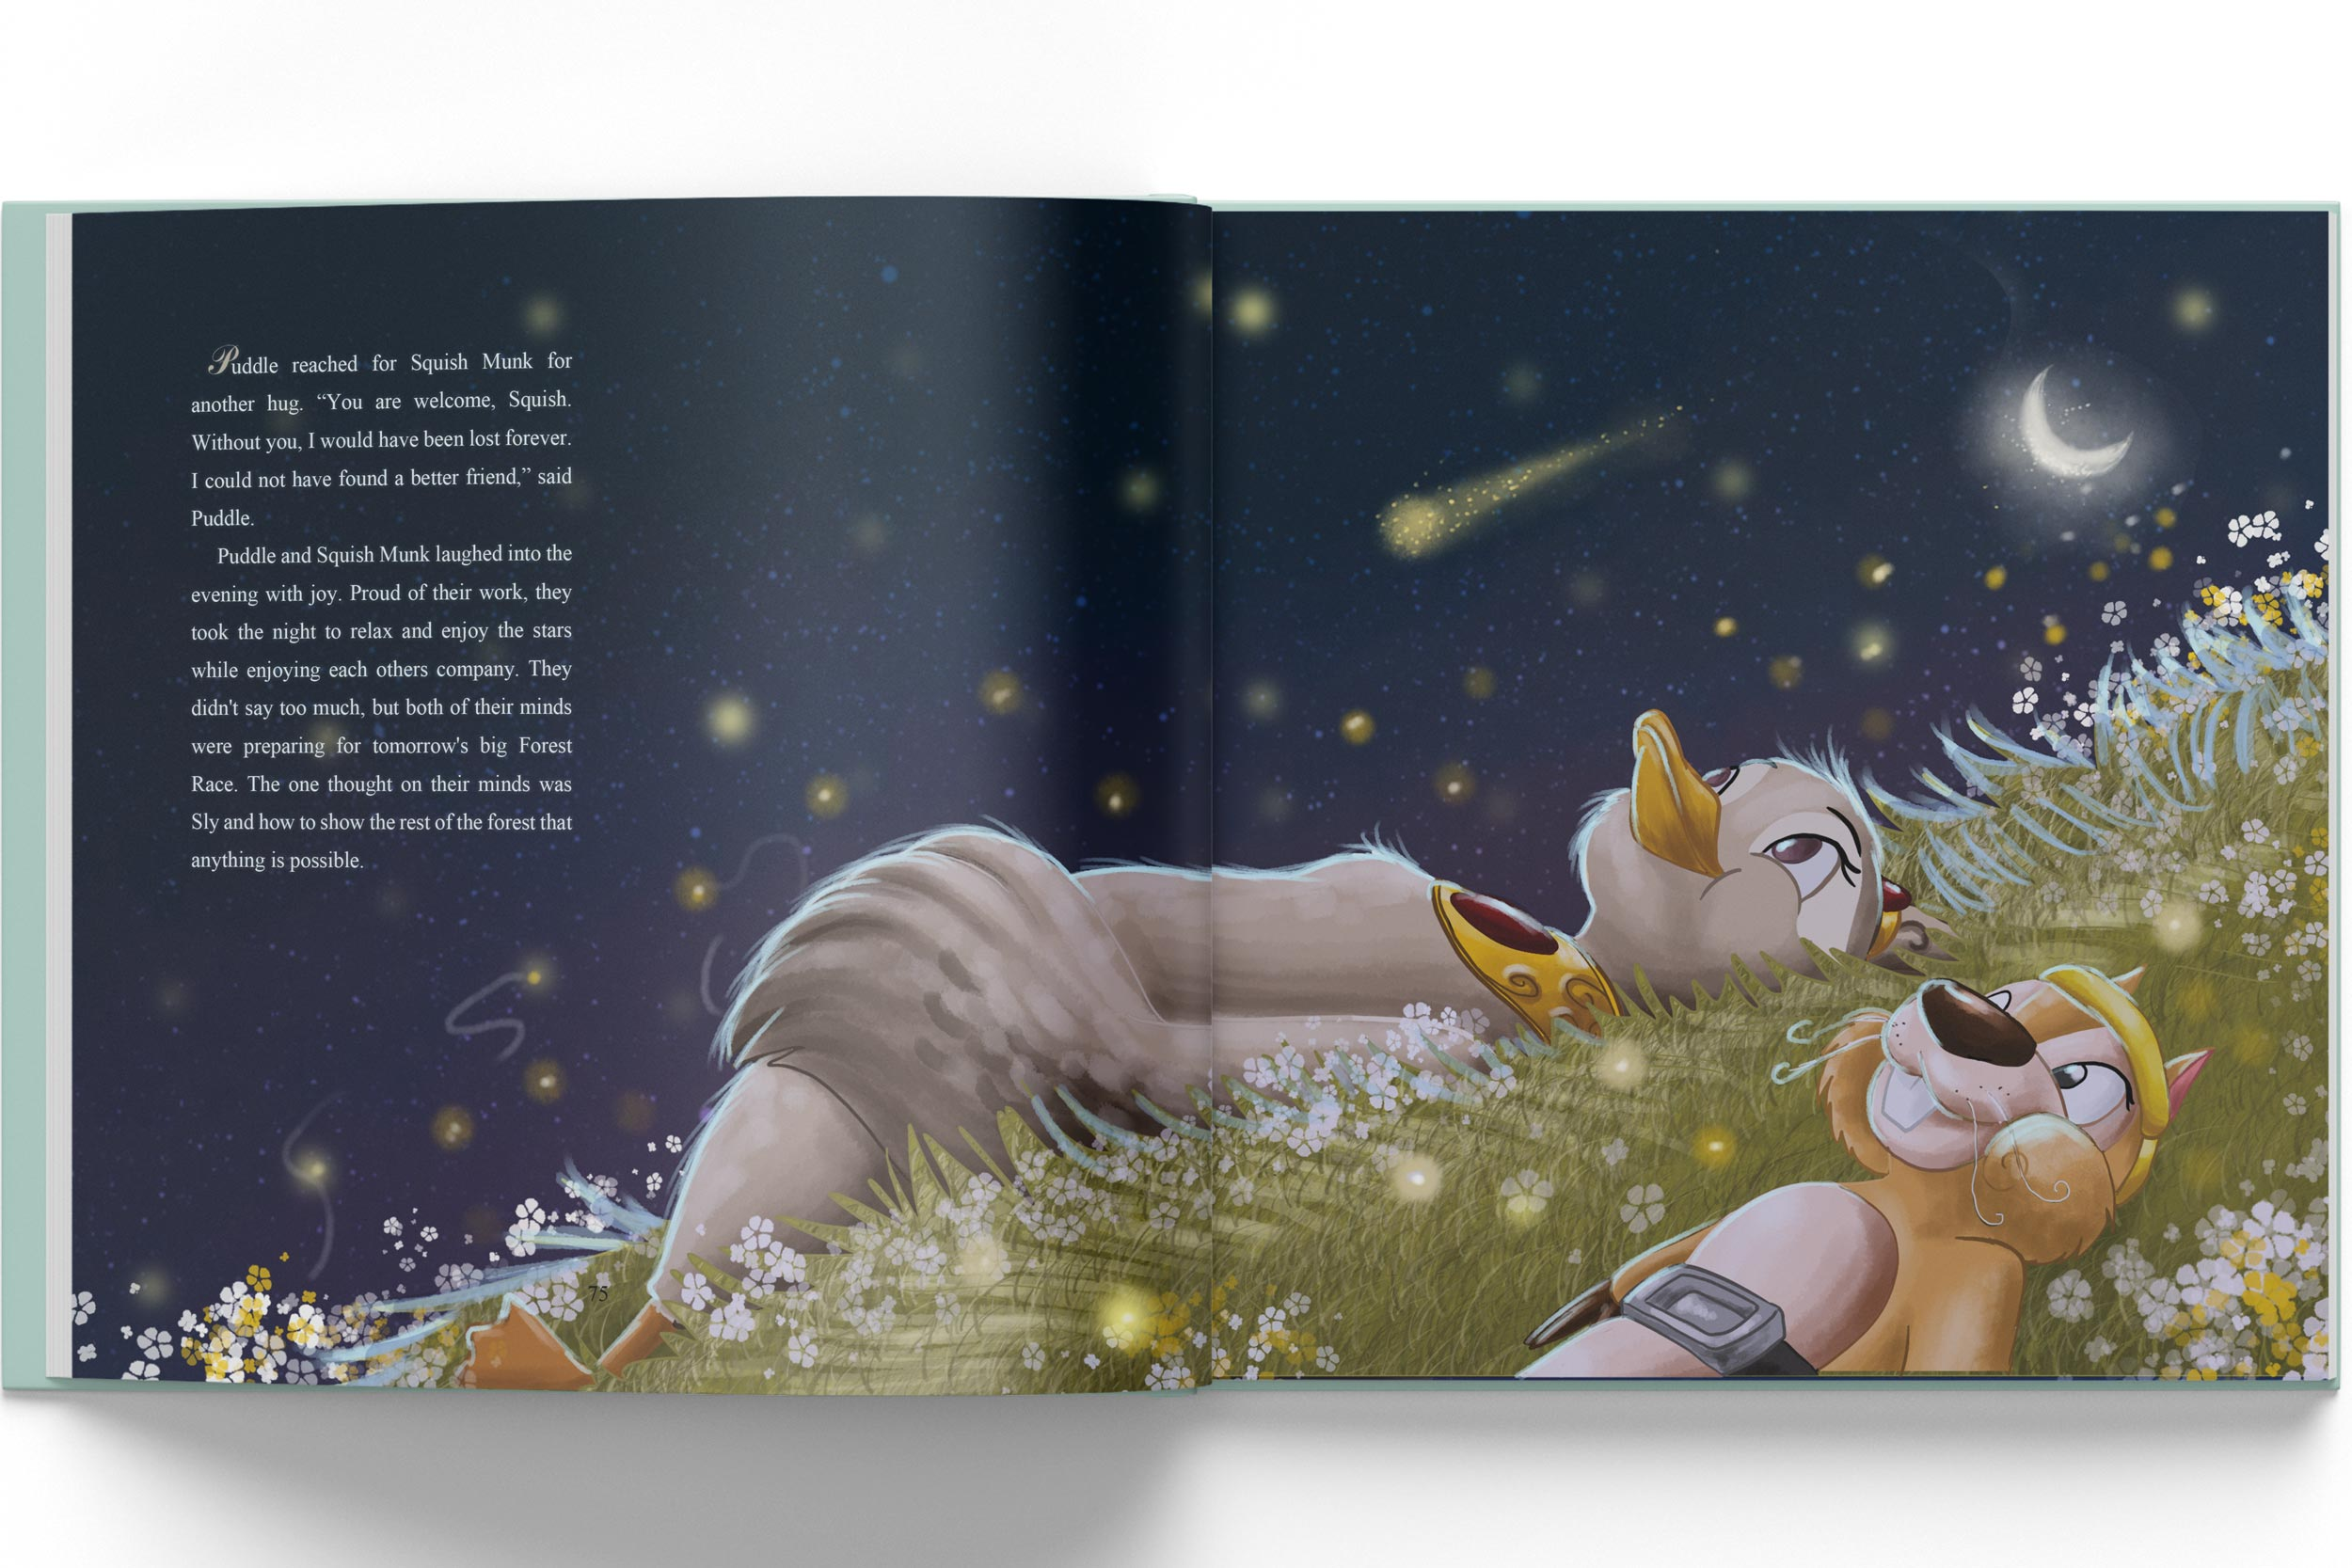 journey-of-puddle-christian-illustrated-children-books-book-2-look-inside-page-3.jpg